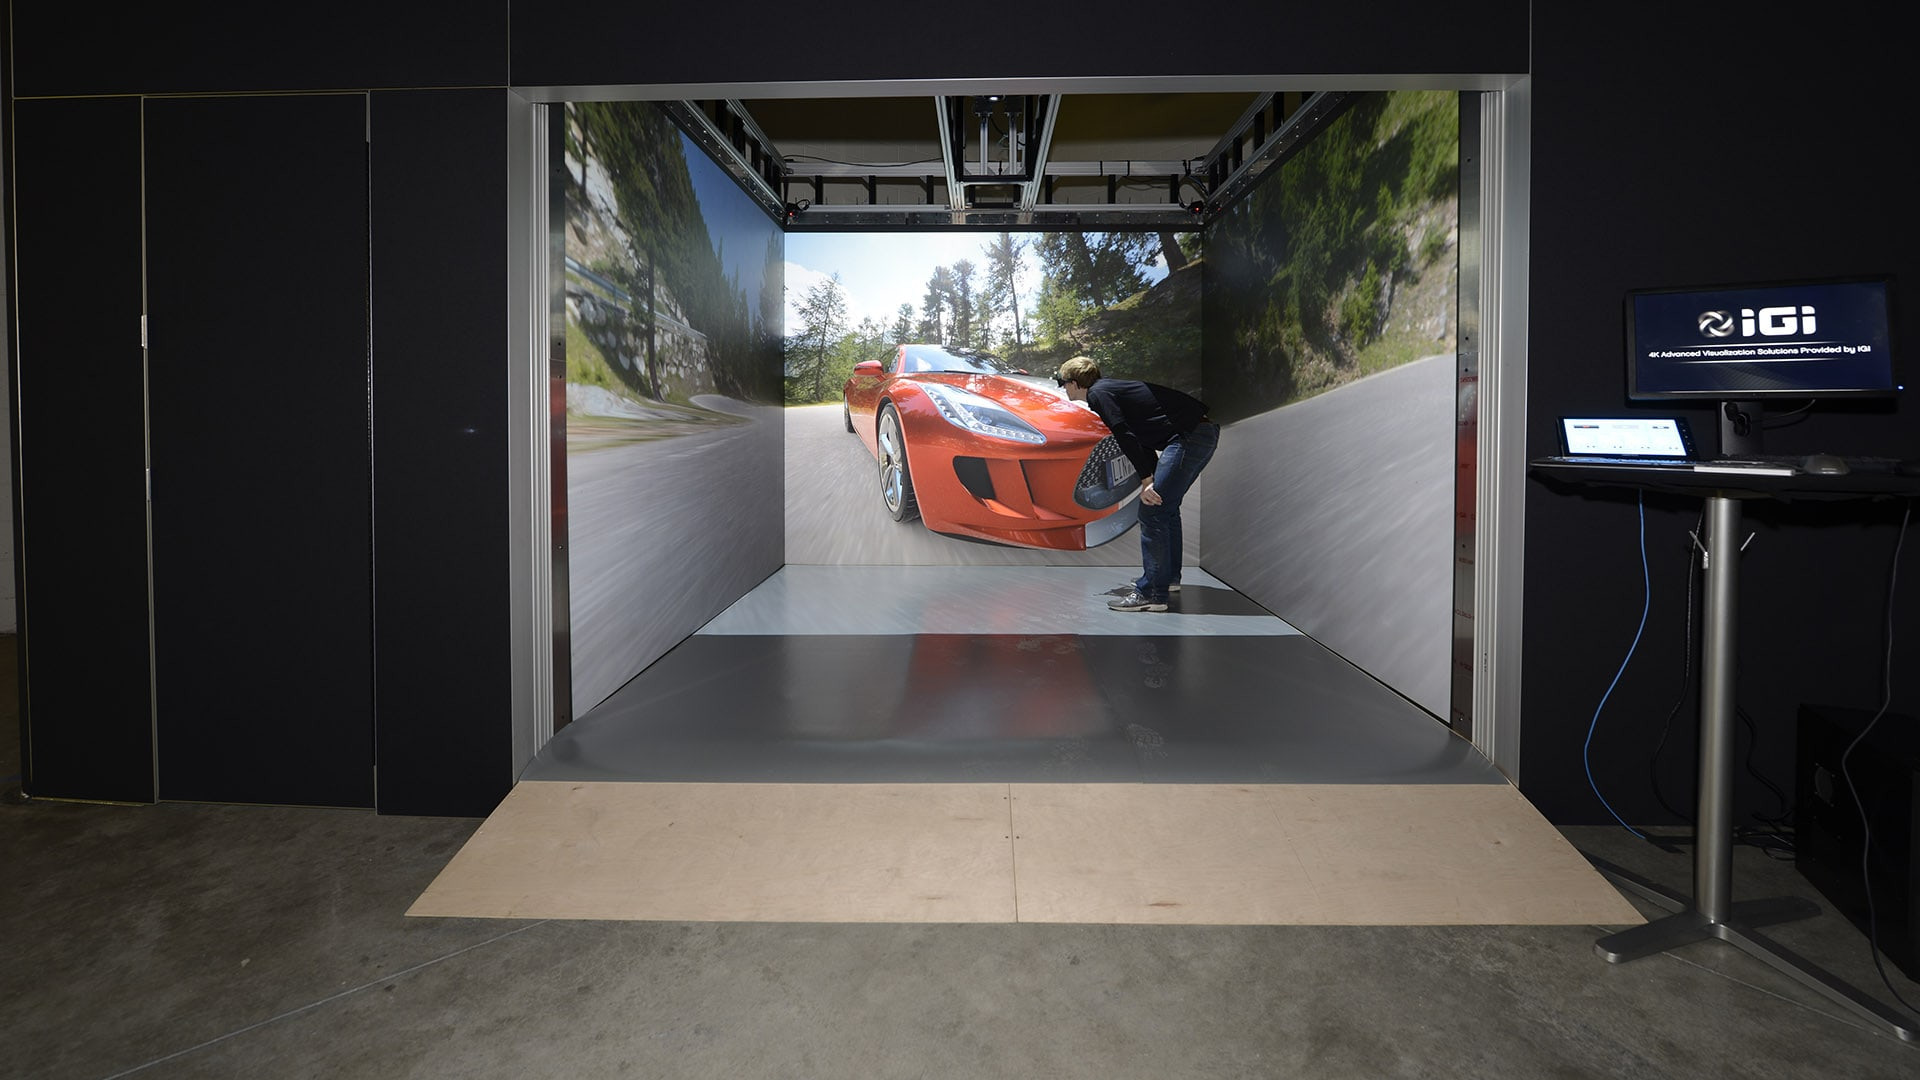 IGI HD CAVE automotive rendering 3D virtual reality